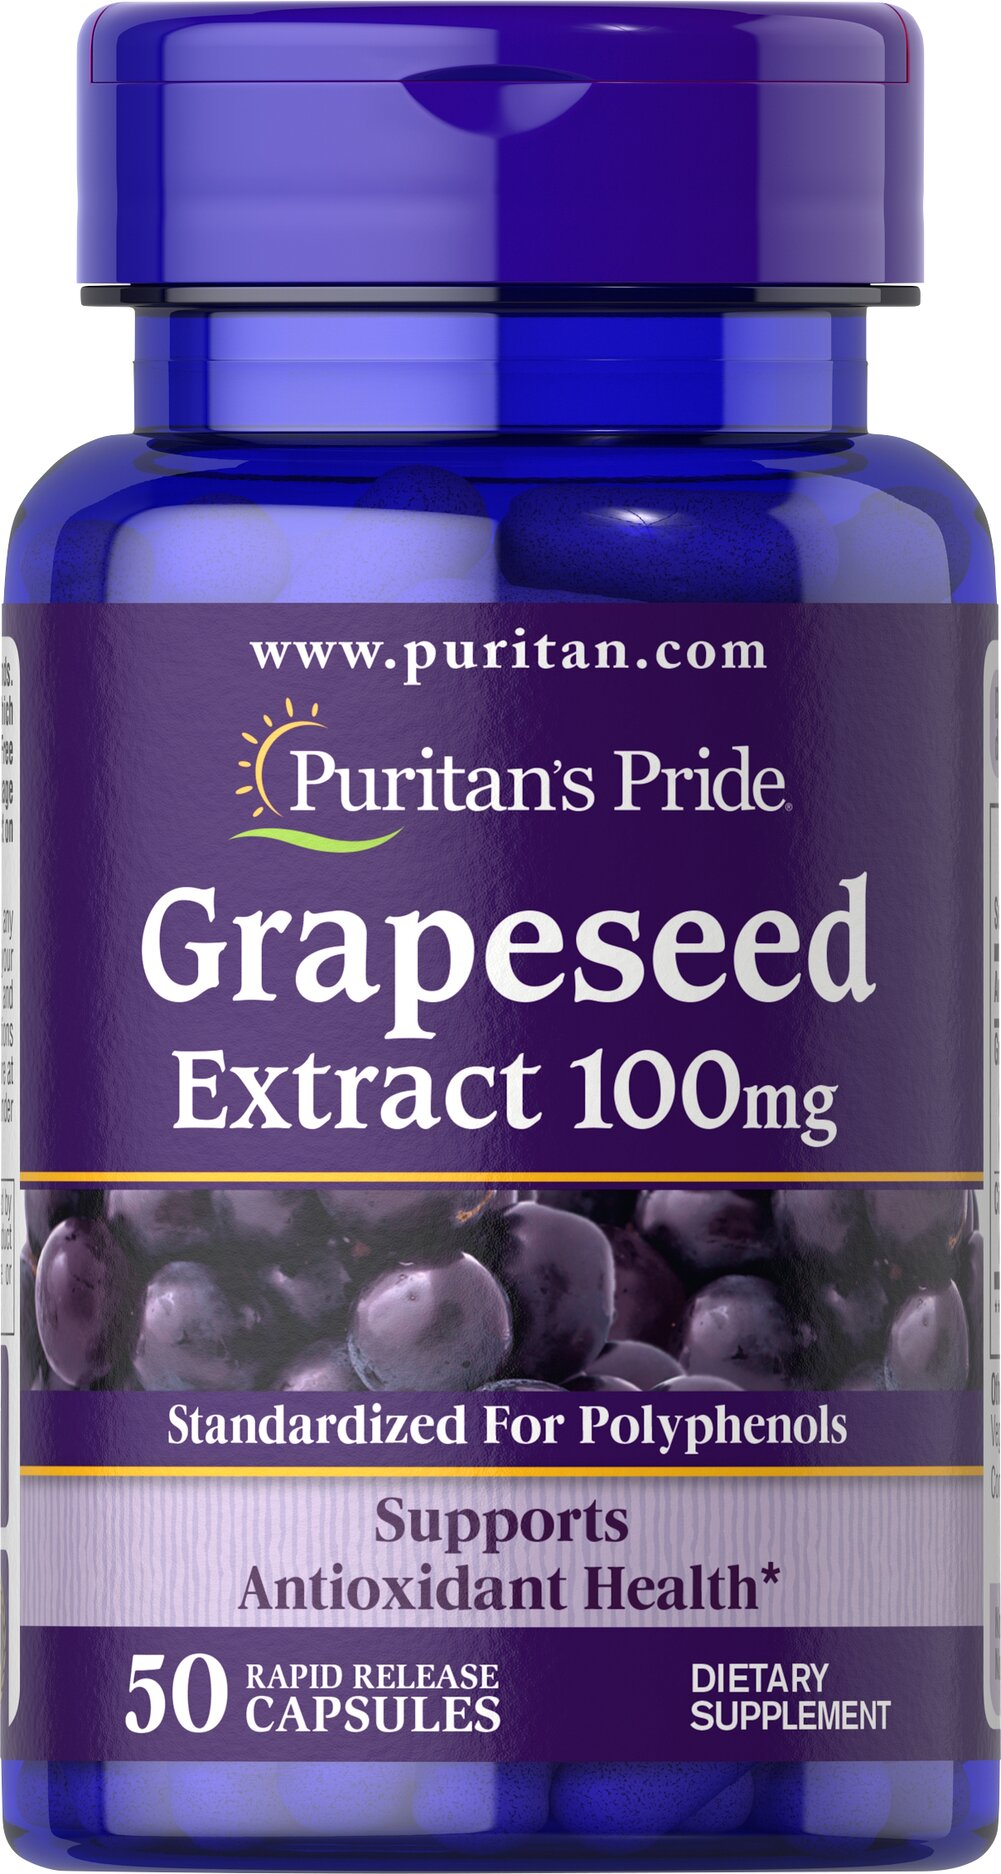 Grapeseed Extract 100 mg <p><strong></strong>Grapeseed Extract helps support antioxidant health.** Antioxidants are nutrients that help to counter the destructive nature of free radicals and assist in maintaining good health.** Grapeseed extract contains oligomeric proanthocyanidins (OPCs), which are naturally occurring bioflavonoids. Standardized to contain 50% Polyphenols. Adults can take one capsule three times daily.<br /></p> 50 Capsules 100 mg $9.99